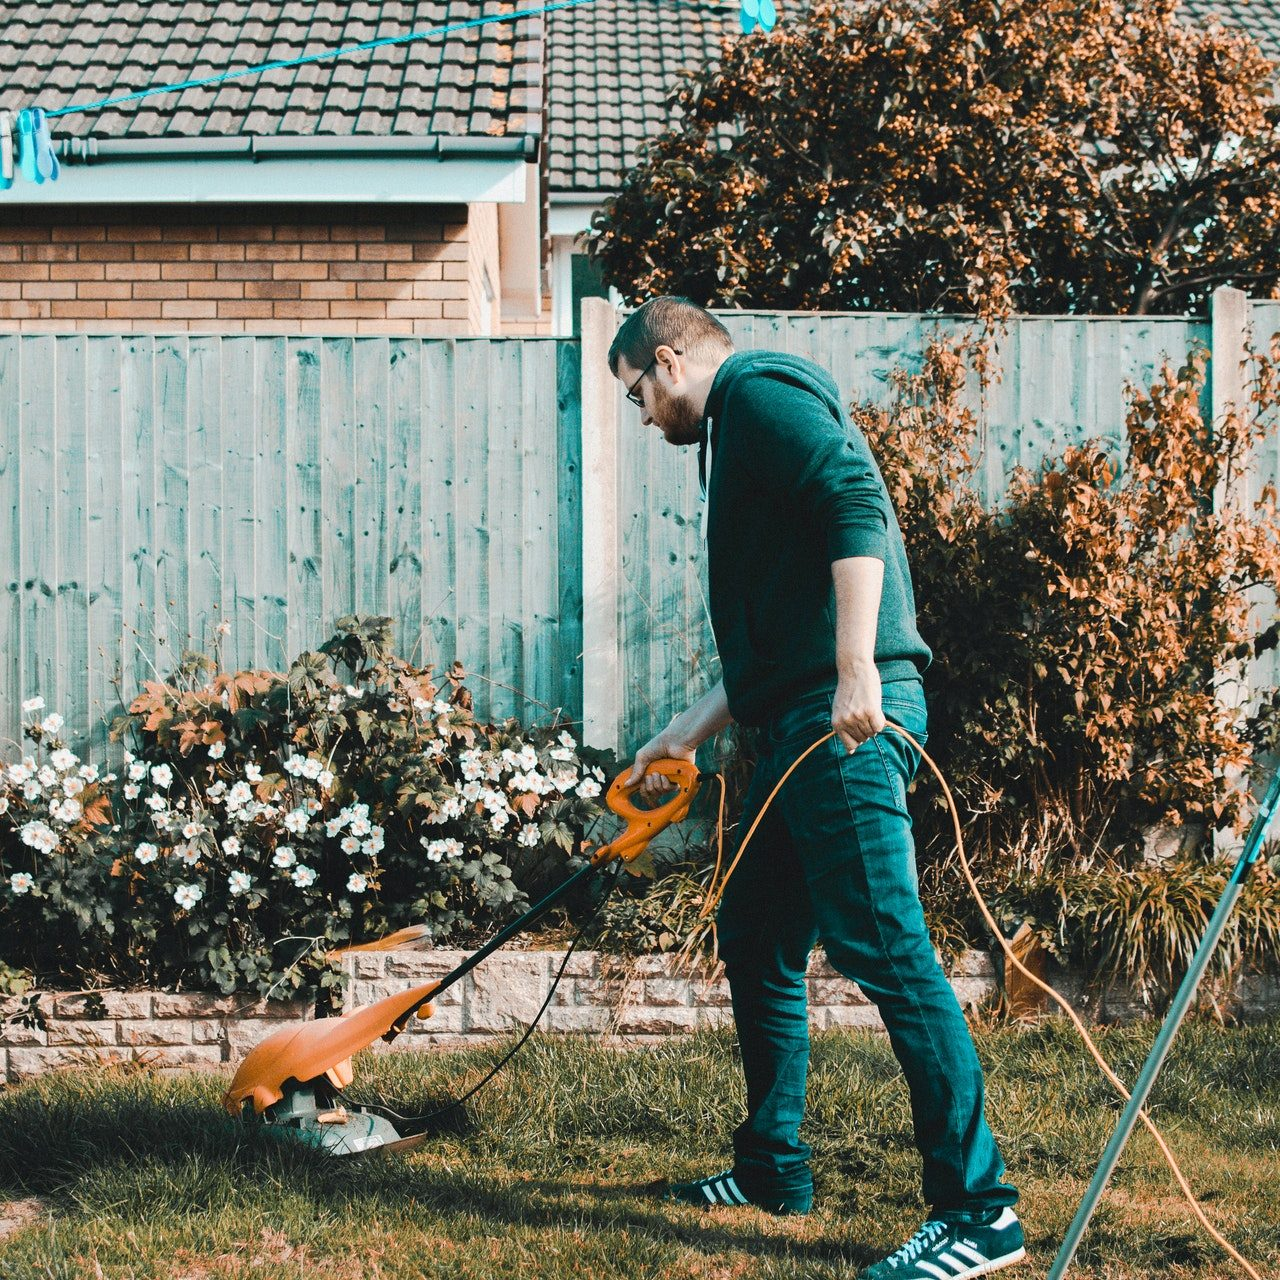 man-holding-orange-electric-grass-cutter-on-lawn-1453499